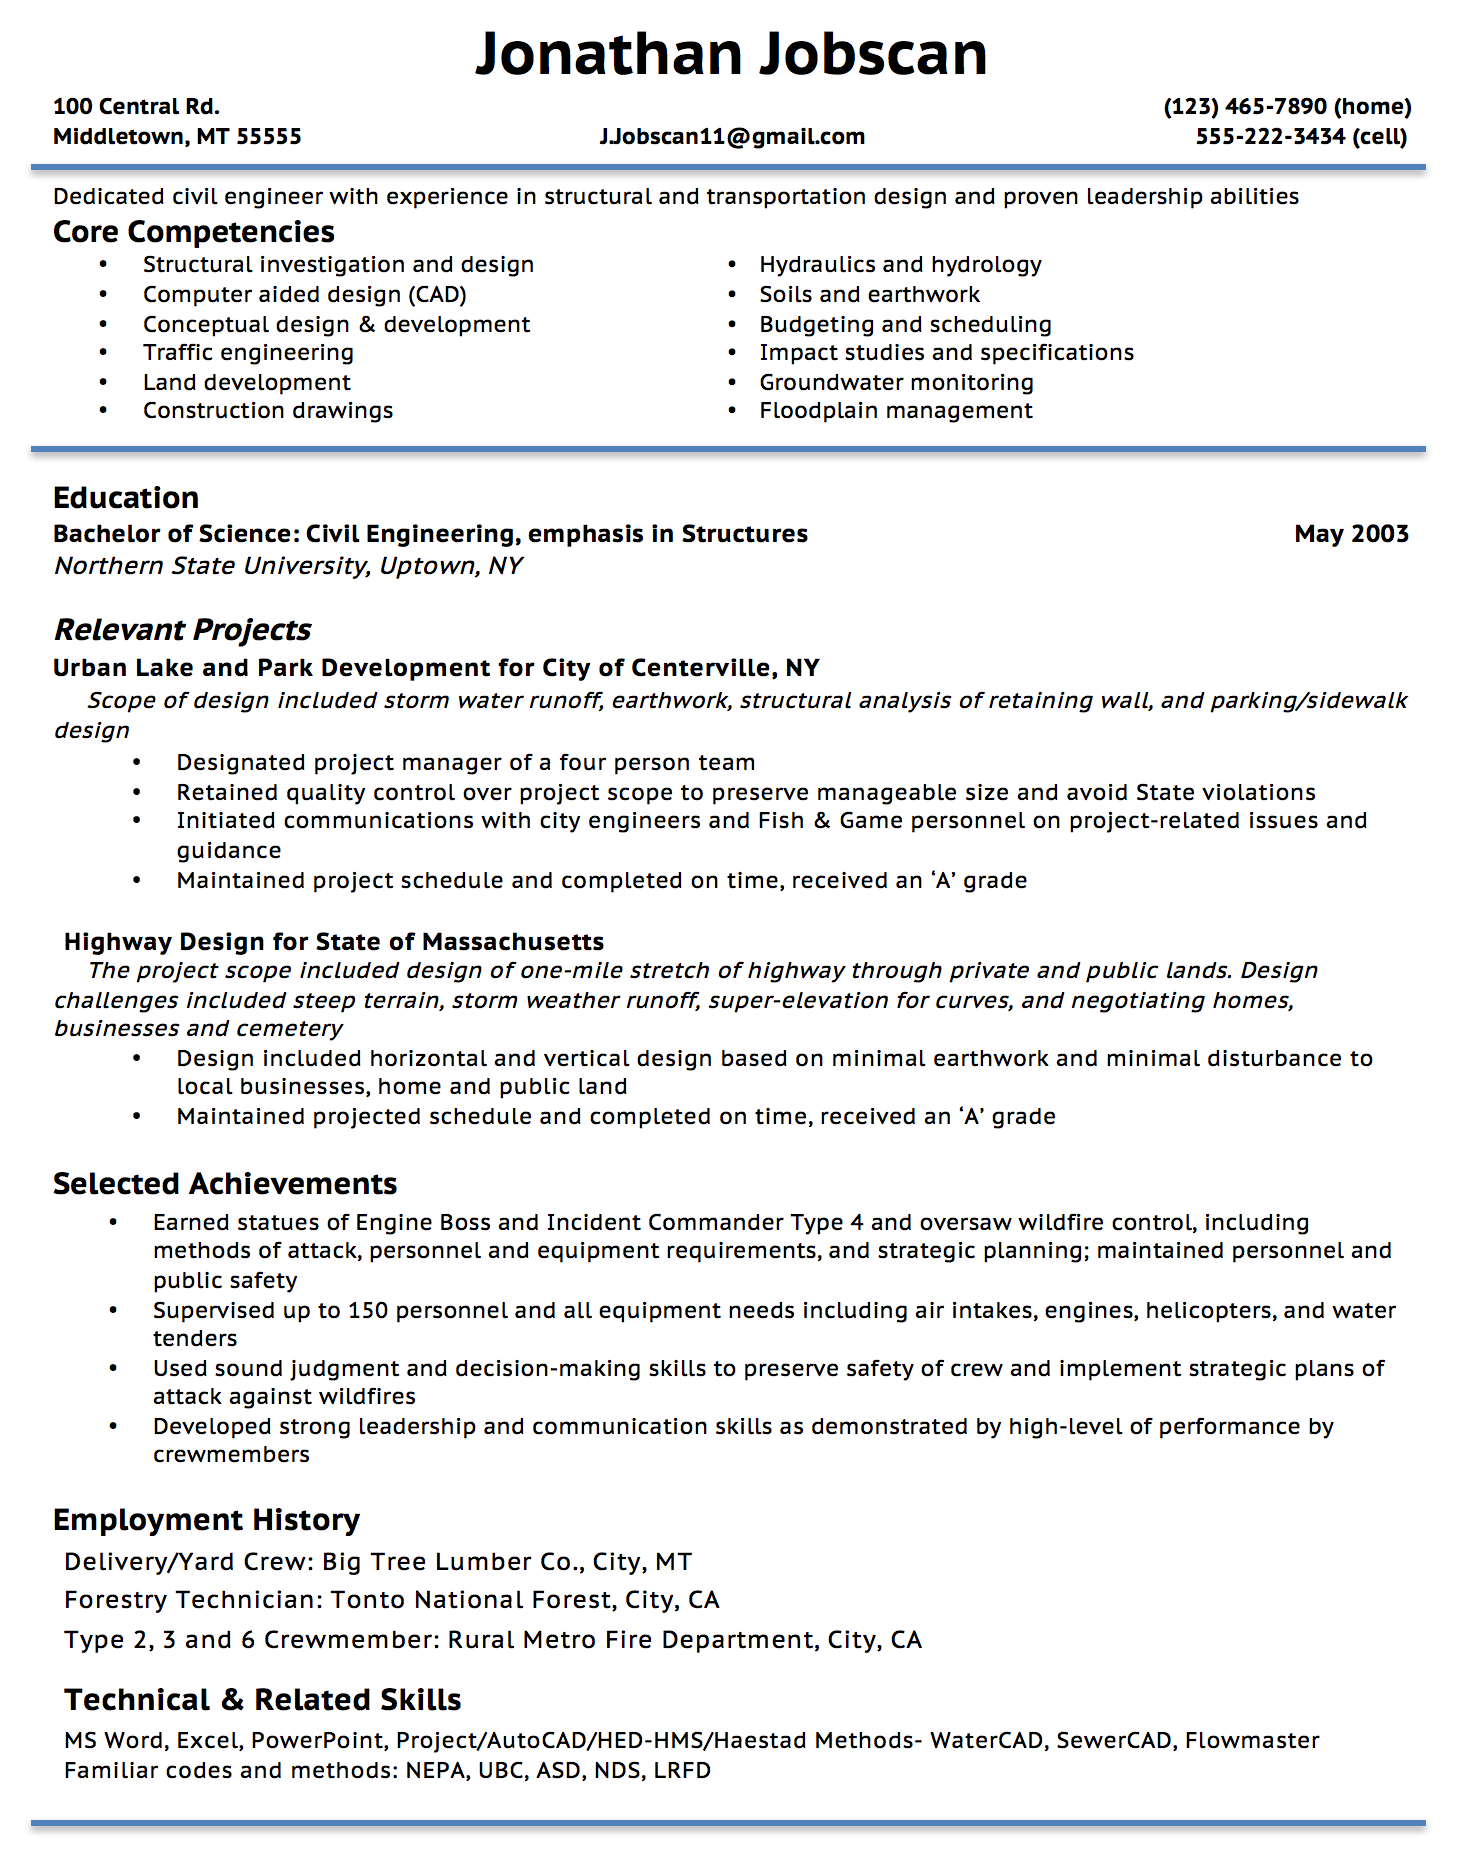 Opposenewapstandardsus  Wonderful Resume Writing Guide  Jobscan With Exciting Example Of A Functional Resume Format With Adorable Resume With Salary History Also How To Write A Resume Profile In Addition Journeyman Electrician Resume And What Needs To Be On A Resume As Well As Waitress Resume Example Additionally Resume For Beginners From Jobscanco With Opposenewapstandardsus  Exciting Resume Writing Guide  Jobscan With Adorable Example Of A Functional Resume Format And Wonderful Resume With Salary History Also How To Write A Resume Profile In Addition Journeyman Electrician Resume From Jobscanco